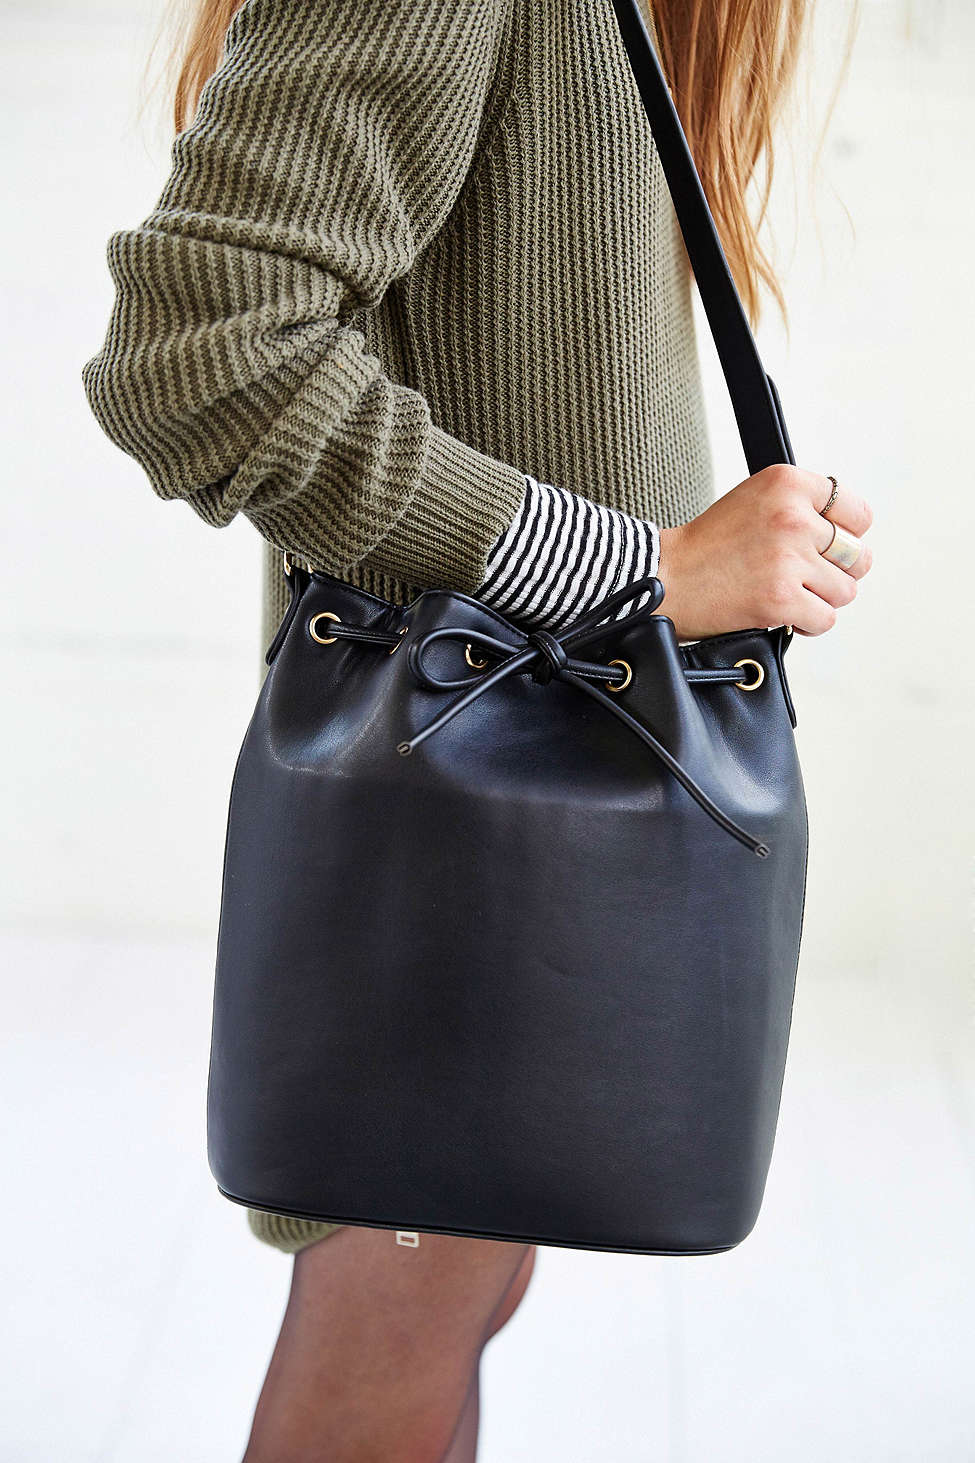 urban outfitters bucket bag spring training game style copy copy